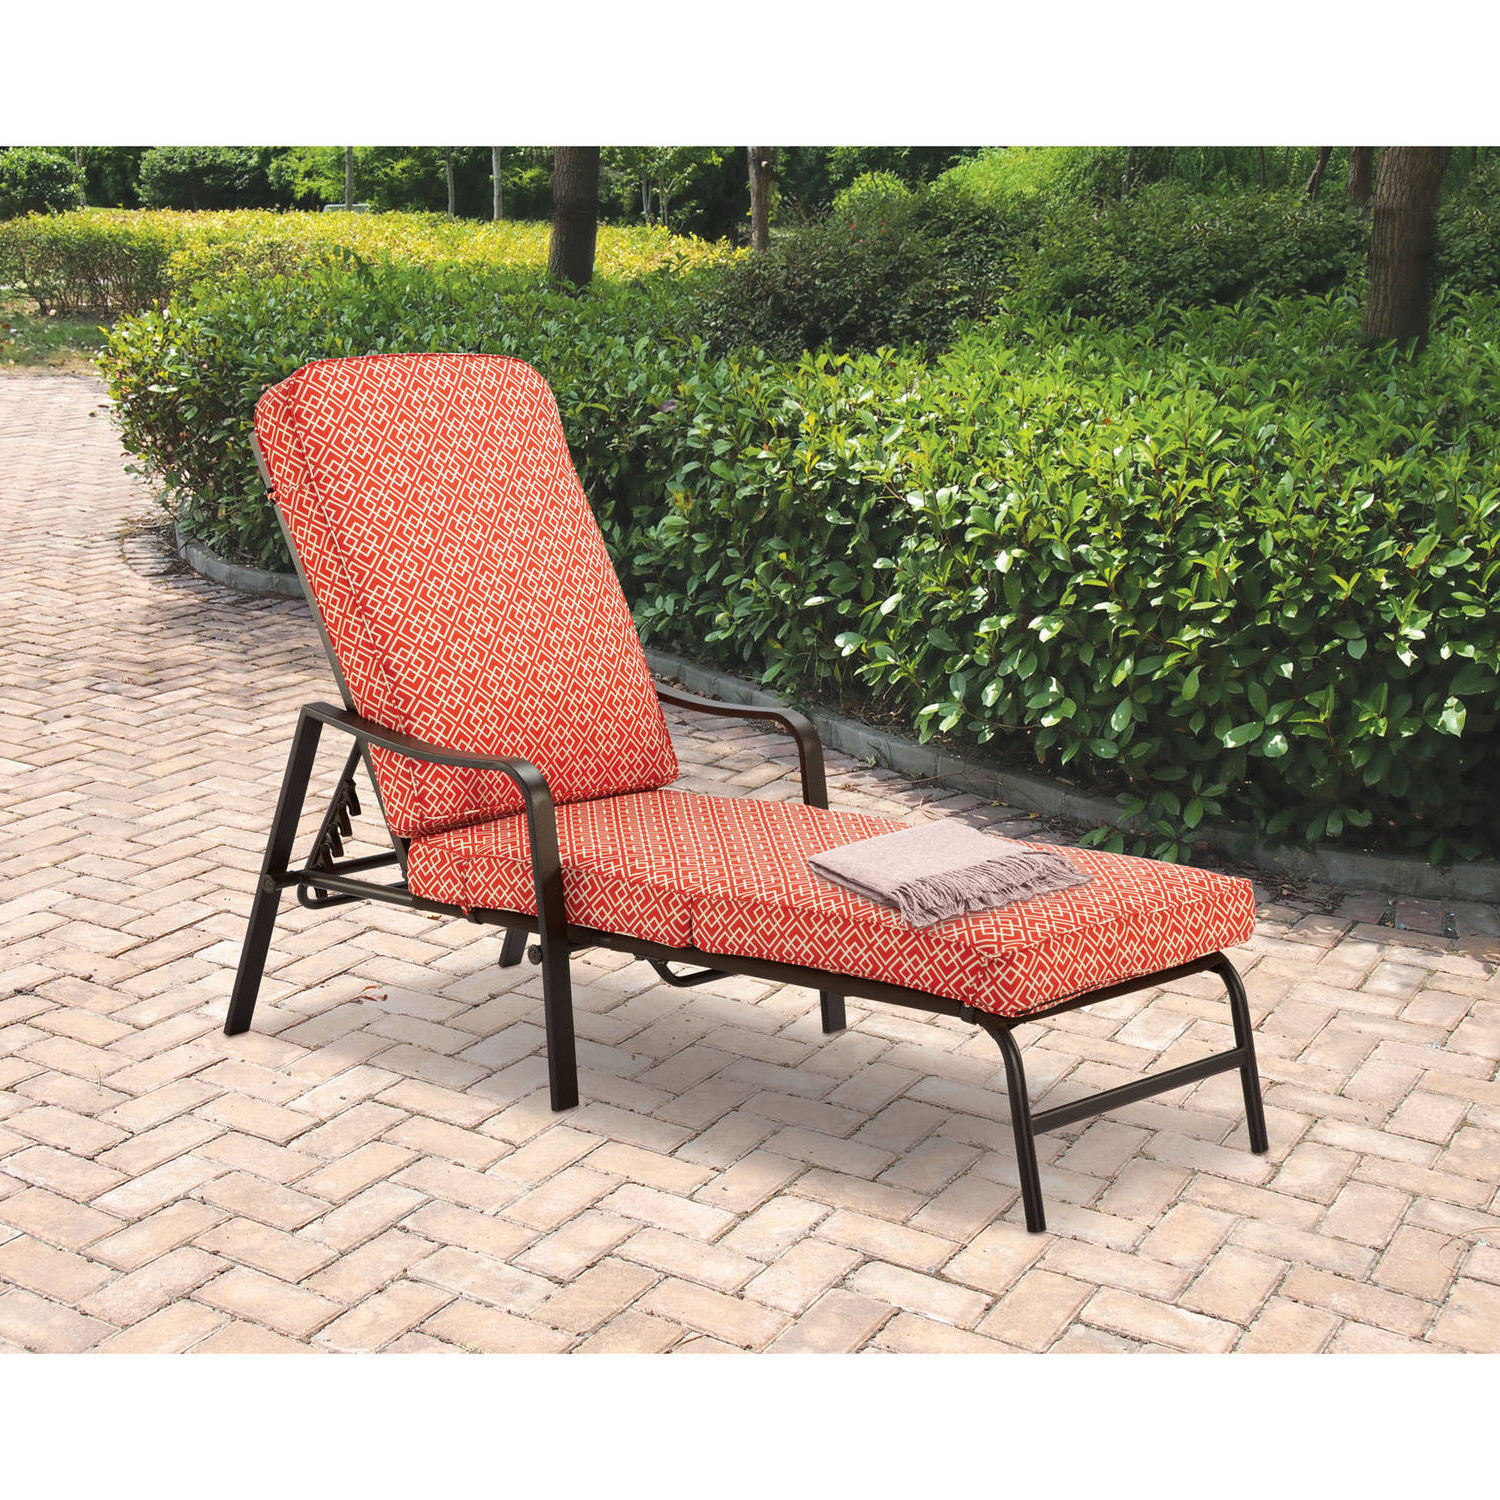 Most Recently Released Wicker Chaise Back Adjustable Patio Lounge Chairs With Wheels With Regard To Mainstays Outdoor Chaise Lounge, Orange Geo Pattern (View 10 of 25)